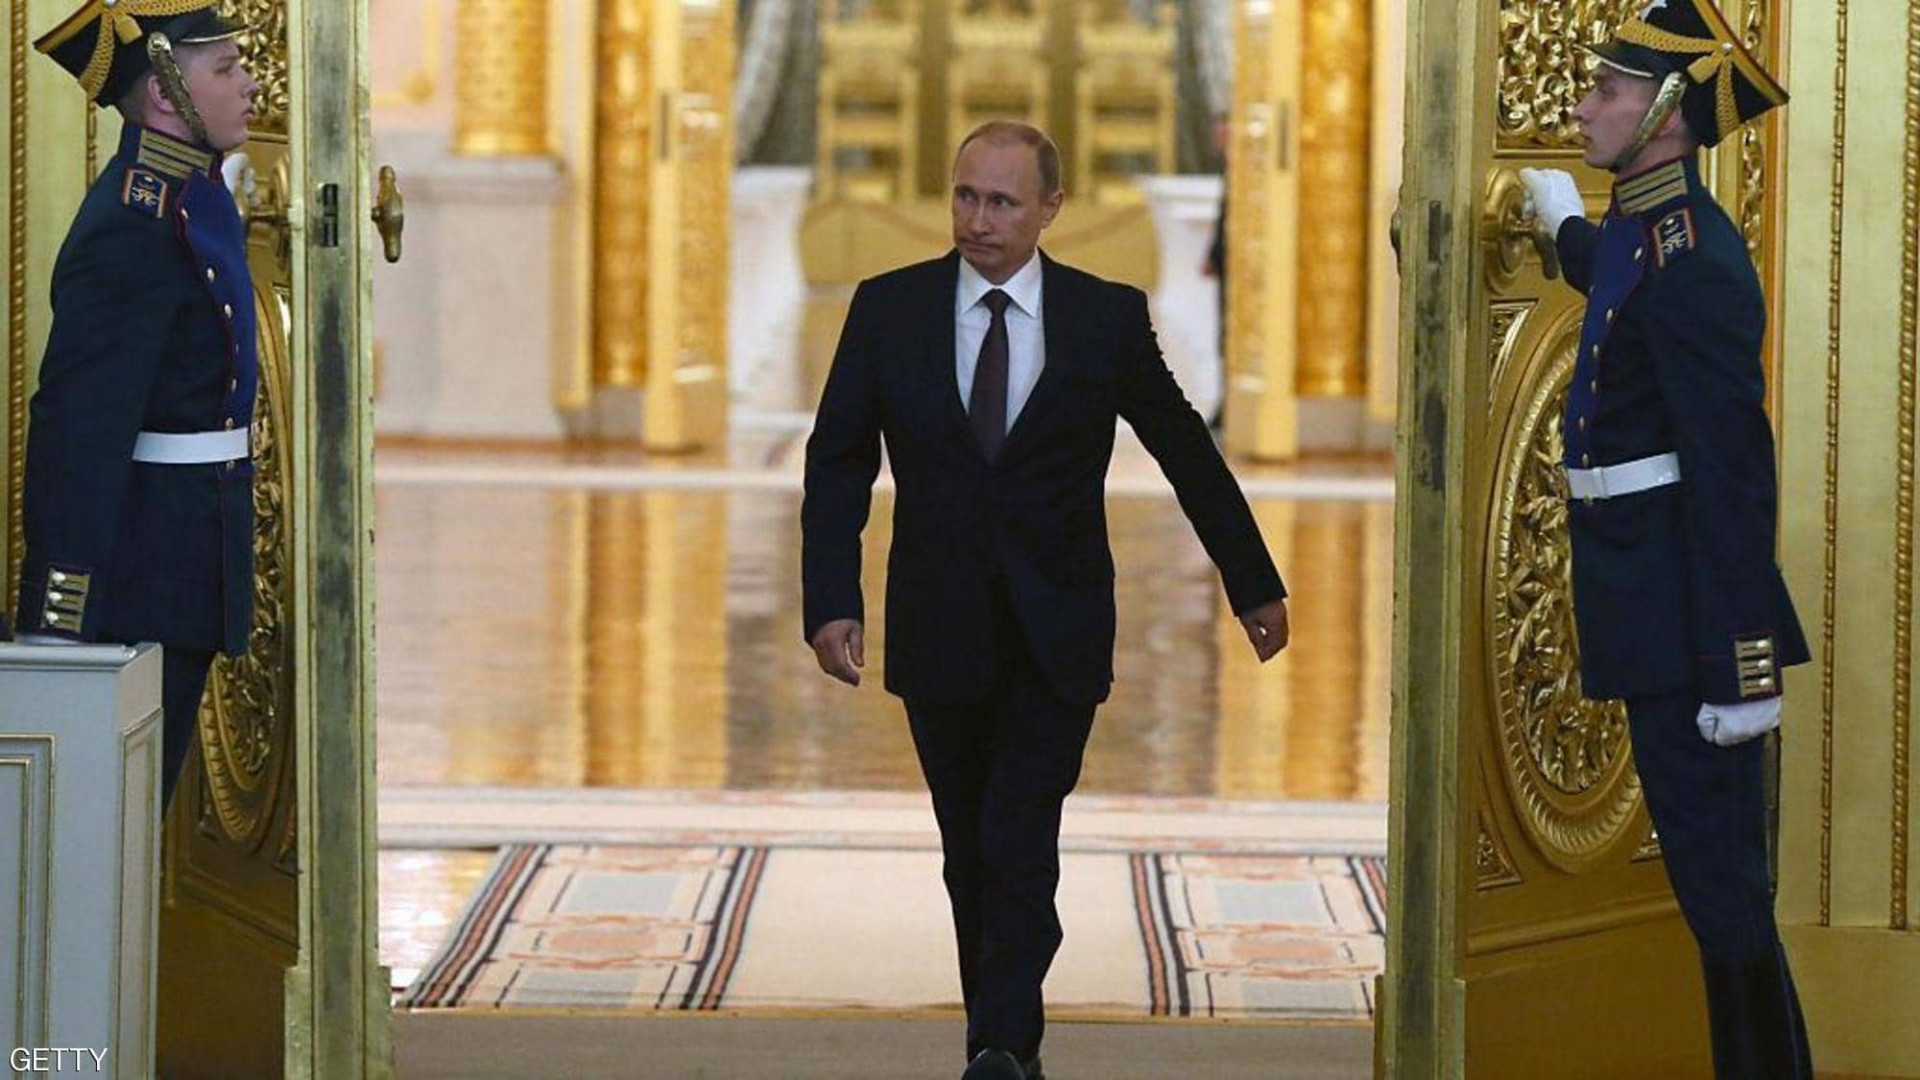 Putin appoints a new ambassador to Baghdad